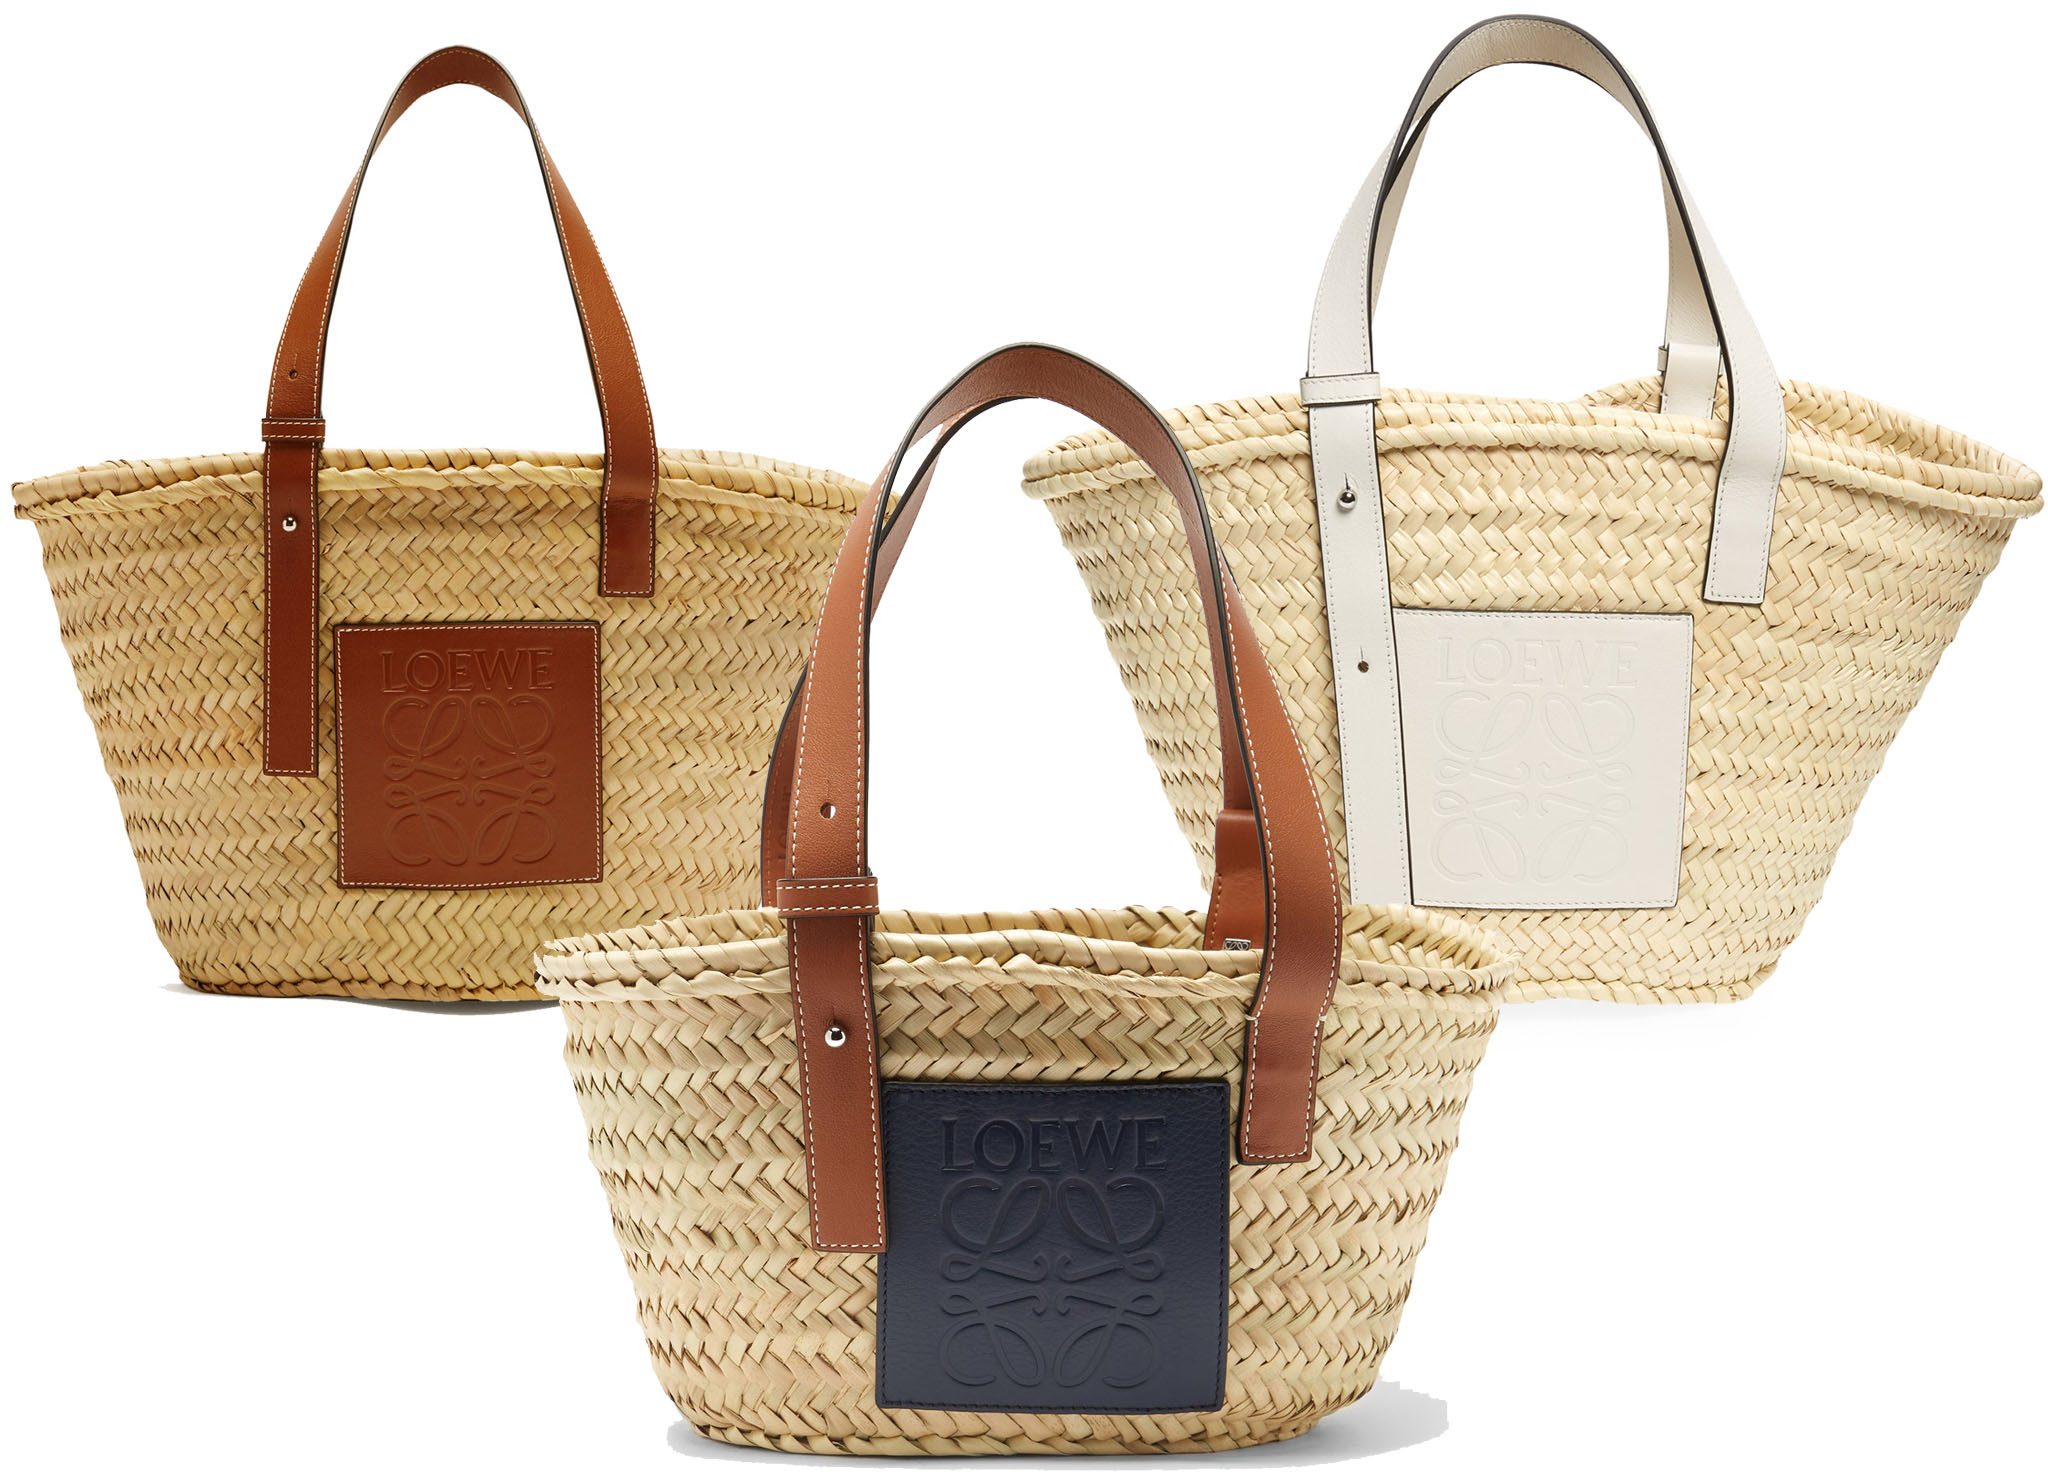 Loewe is known not only for its fine leather goods but also for its basket woven bags